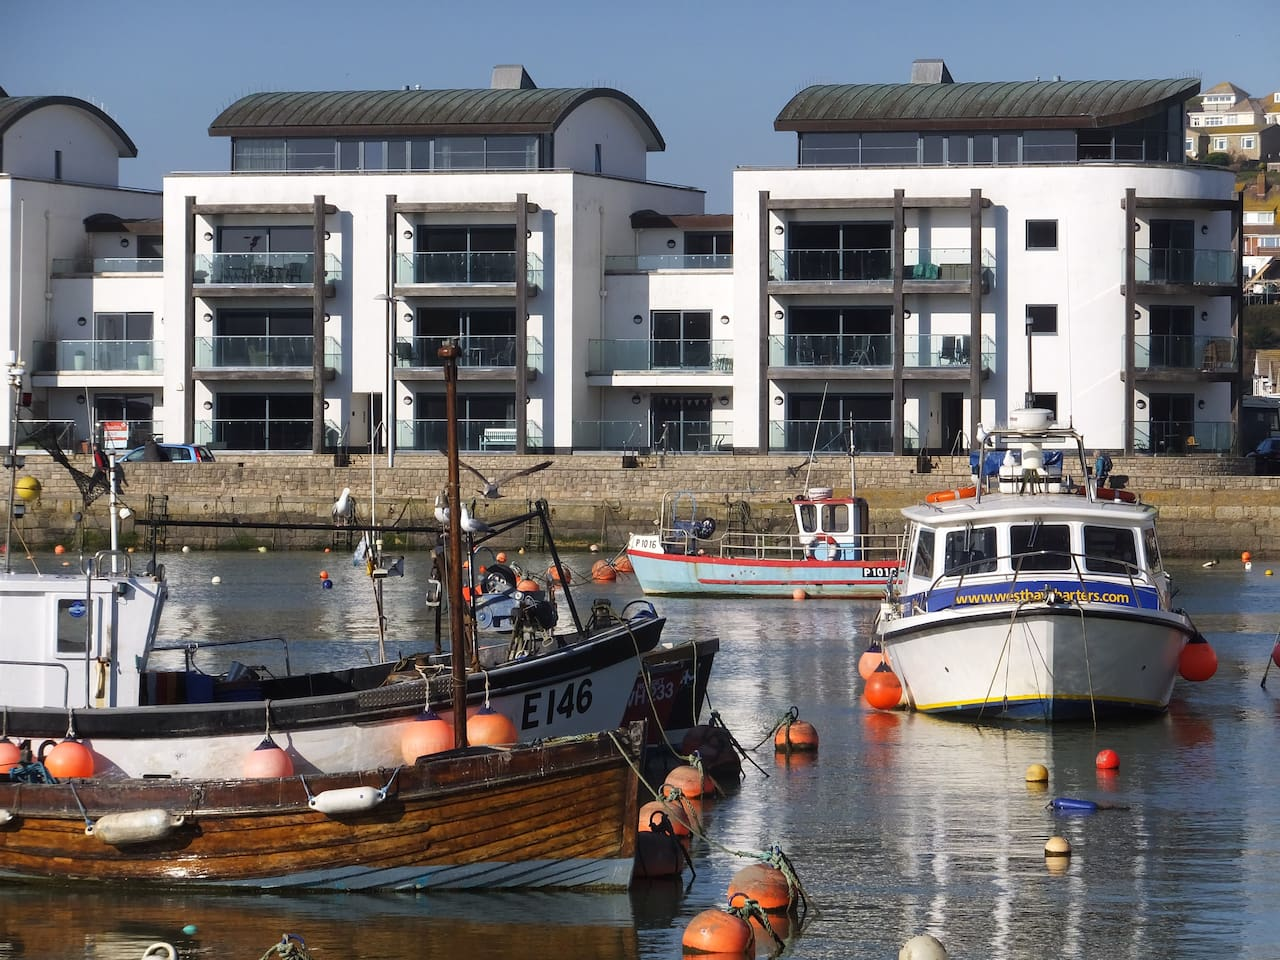 Quayside House across the Harbour